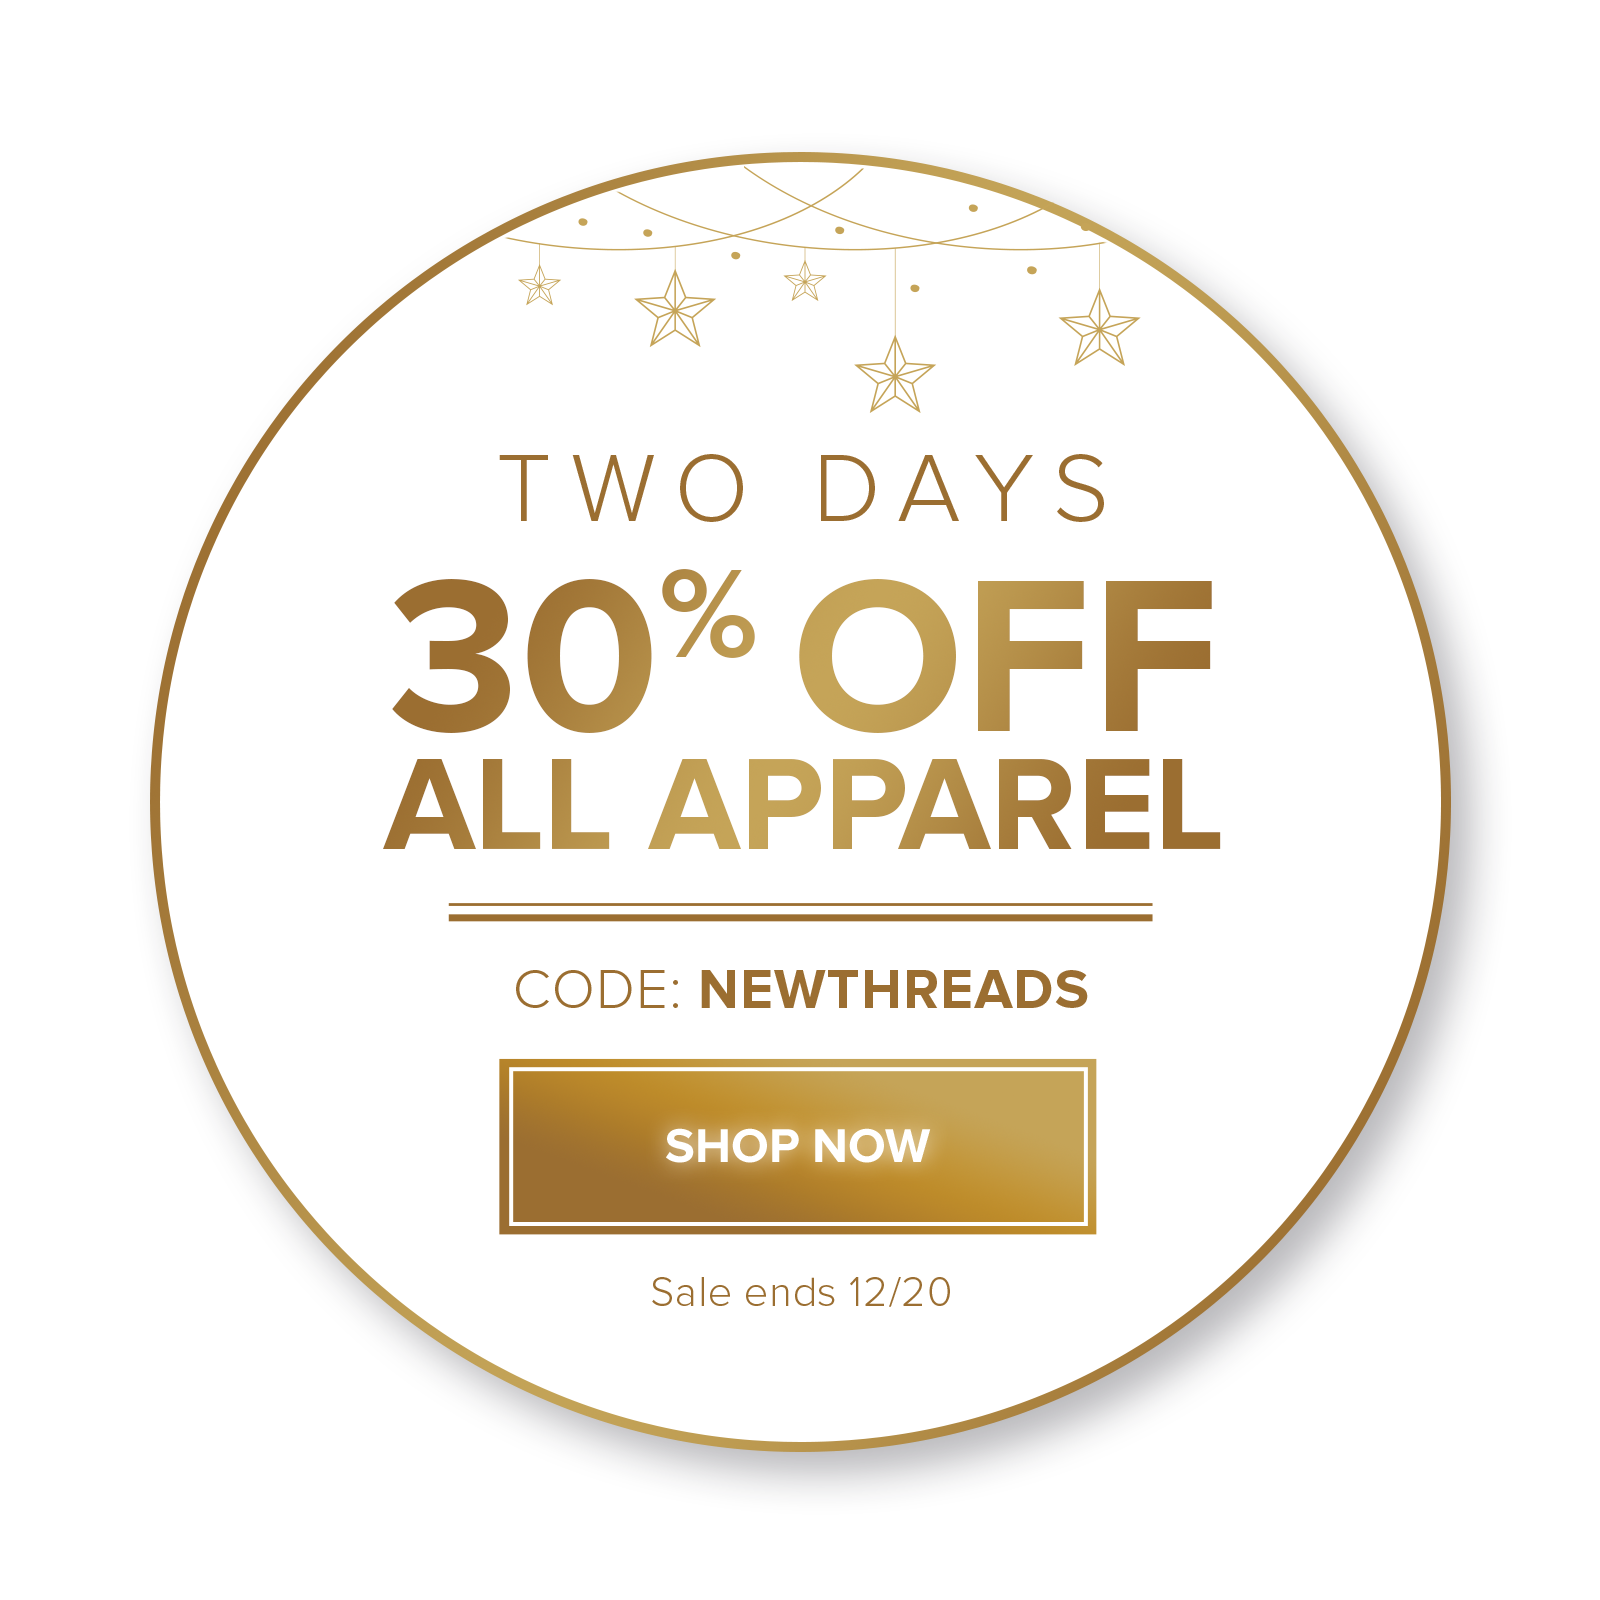 30% off apparel with promo code: NEWTHREADS